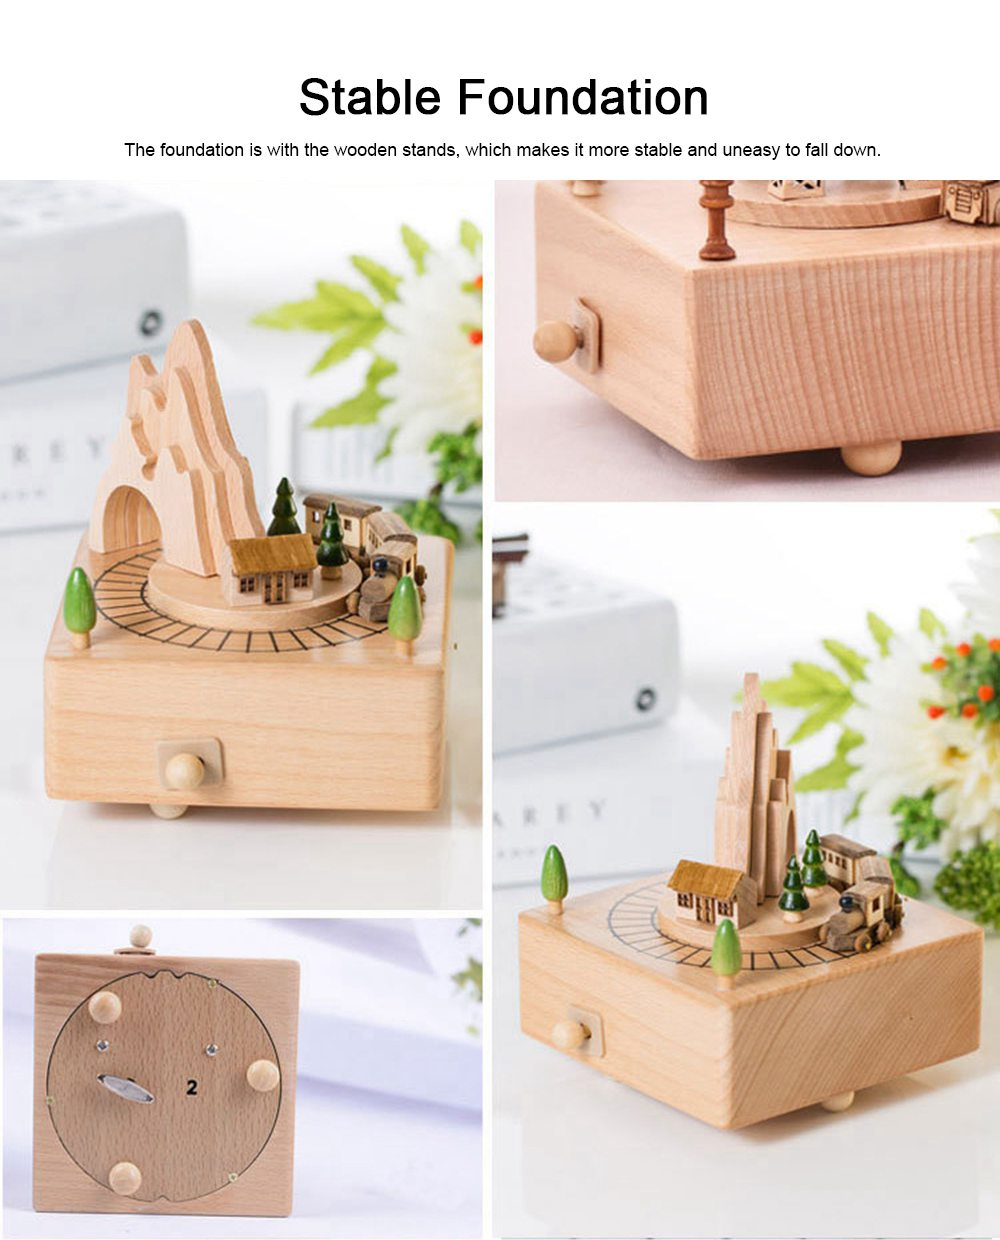 Creative Roller Coaster Wooden Music Box, Hand-made Wood Ware, Gifts Presents Ideal for Girlfriend Children Kids 4